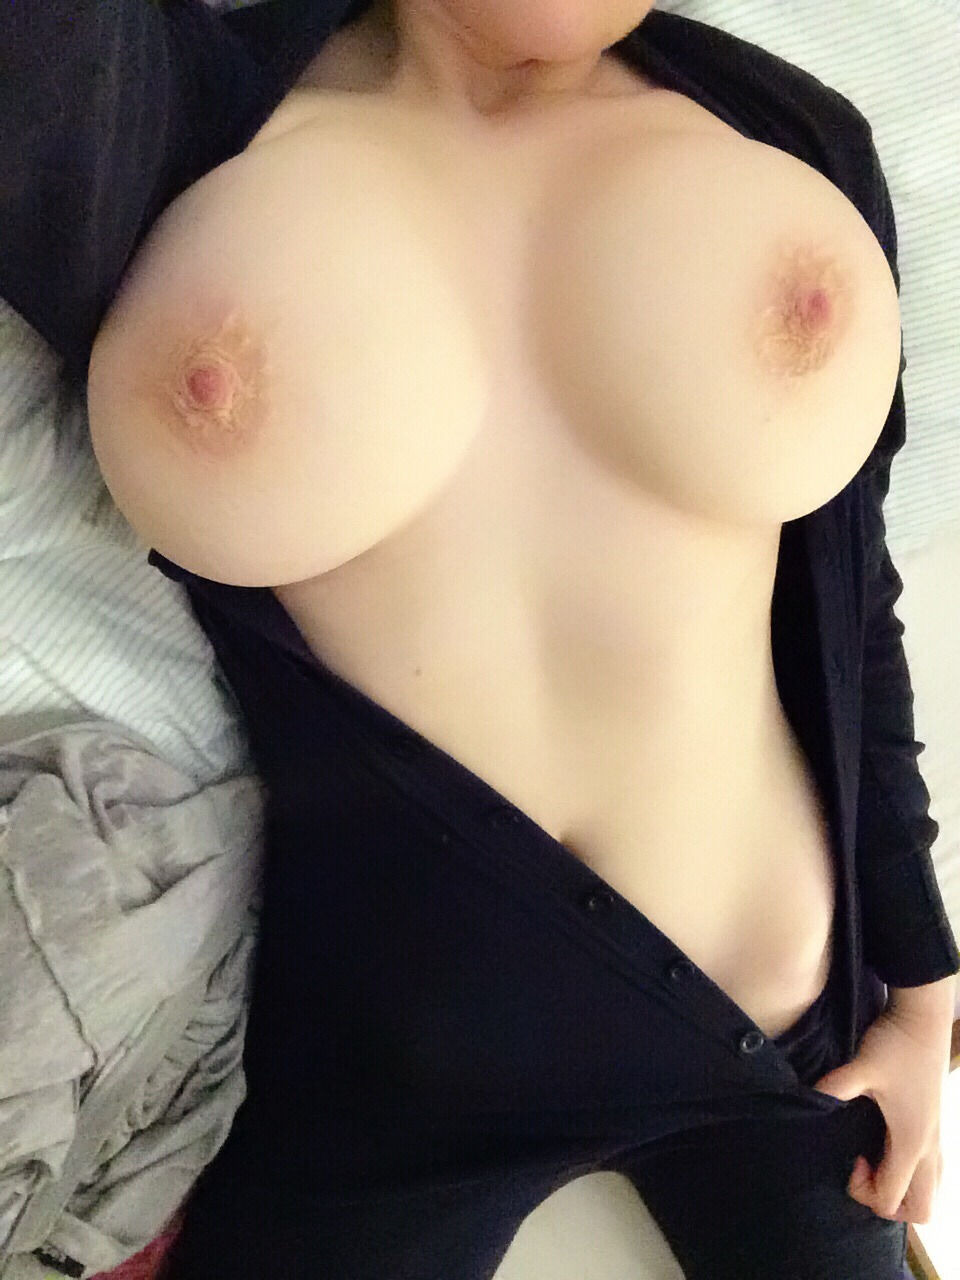 Love to suck those..